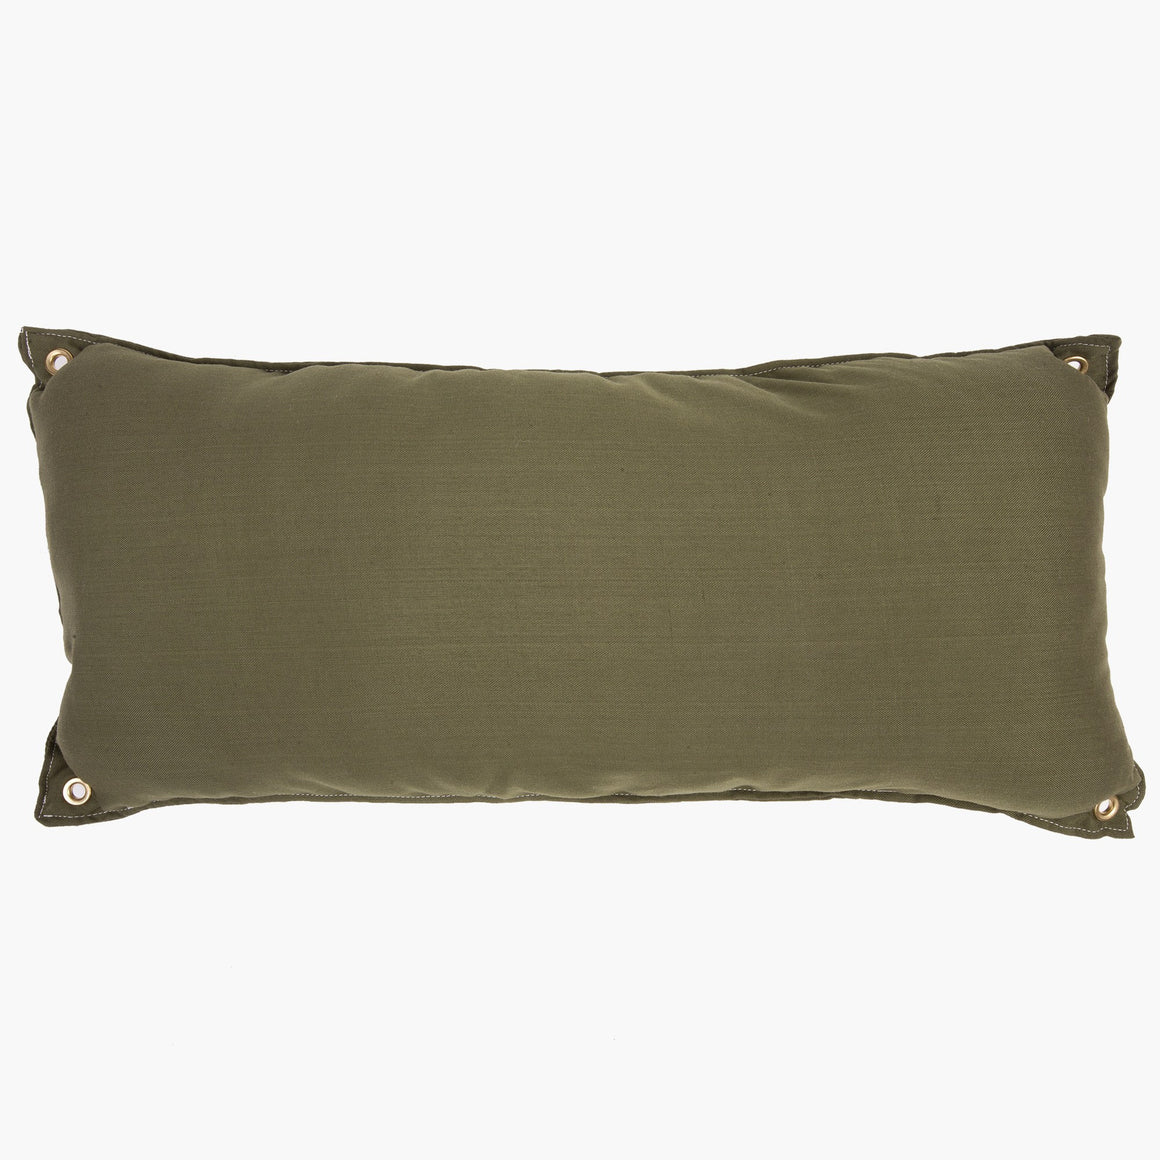 Traditional Hammock Pillow - Leaf Green